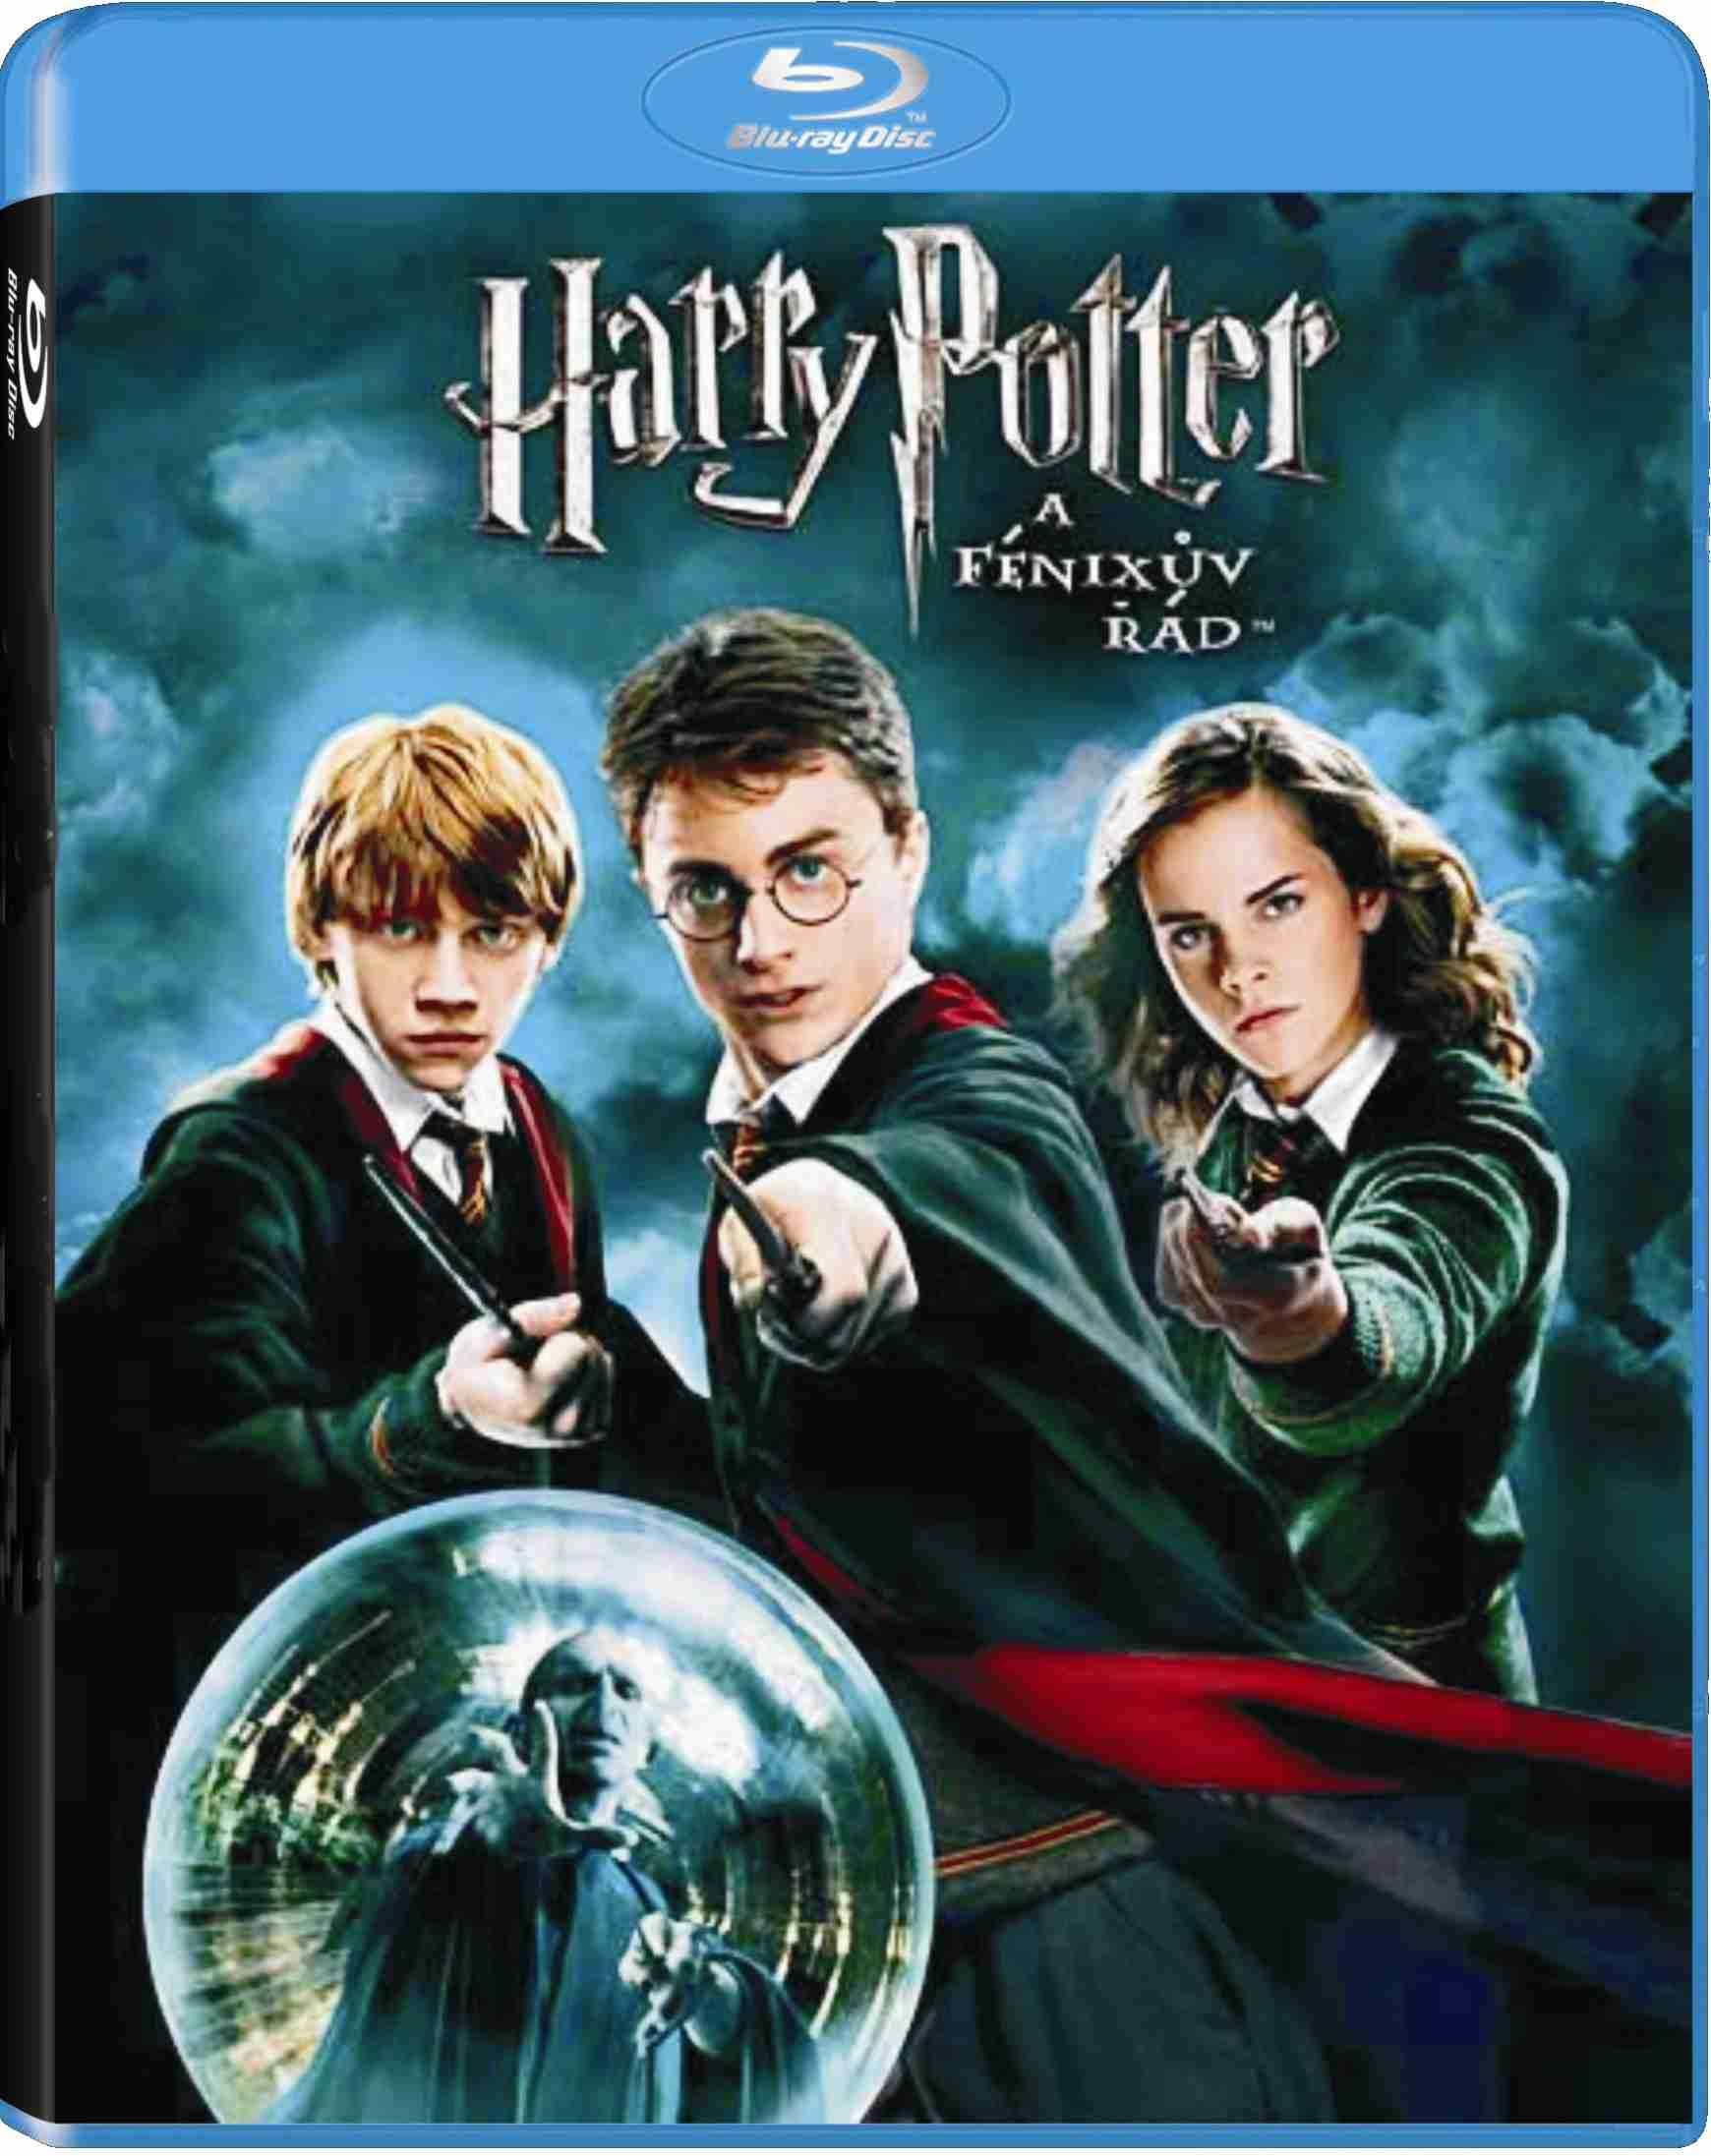 HARRY POTTER A FÉNIXŮV ŘÁD - Blu-ray